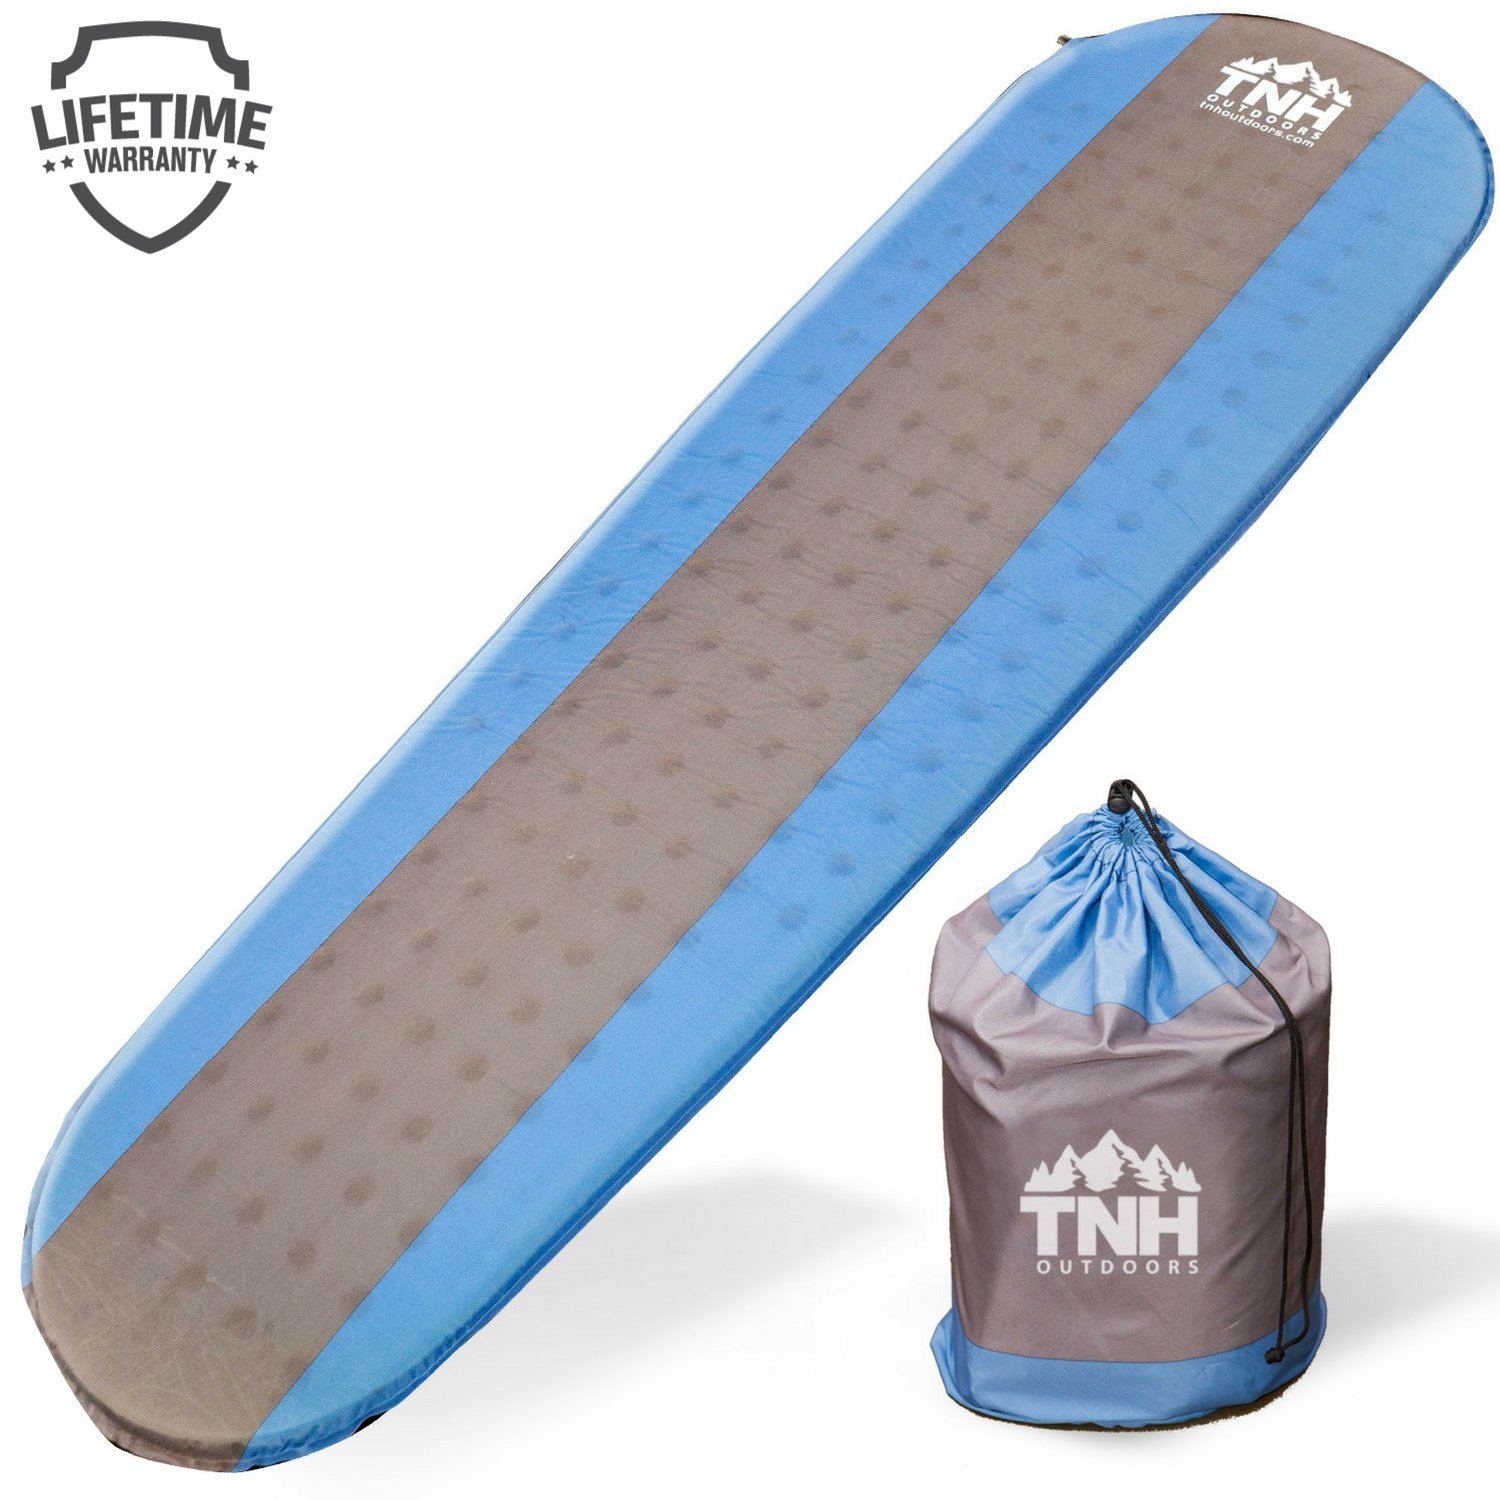 TNH Outdoors Self Inflating Sleeping Pad With Lightweight Foam Padding